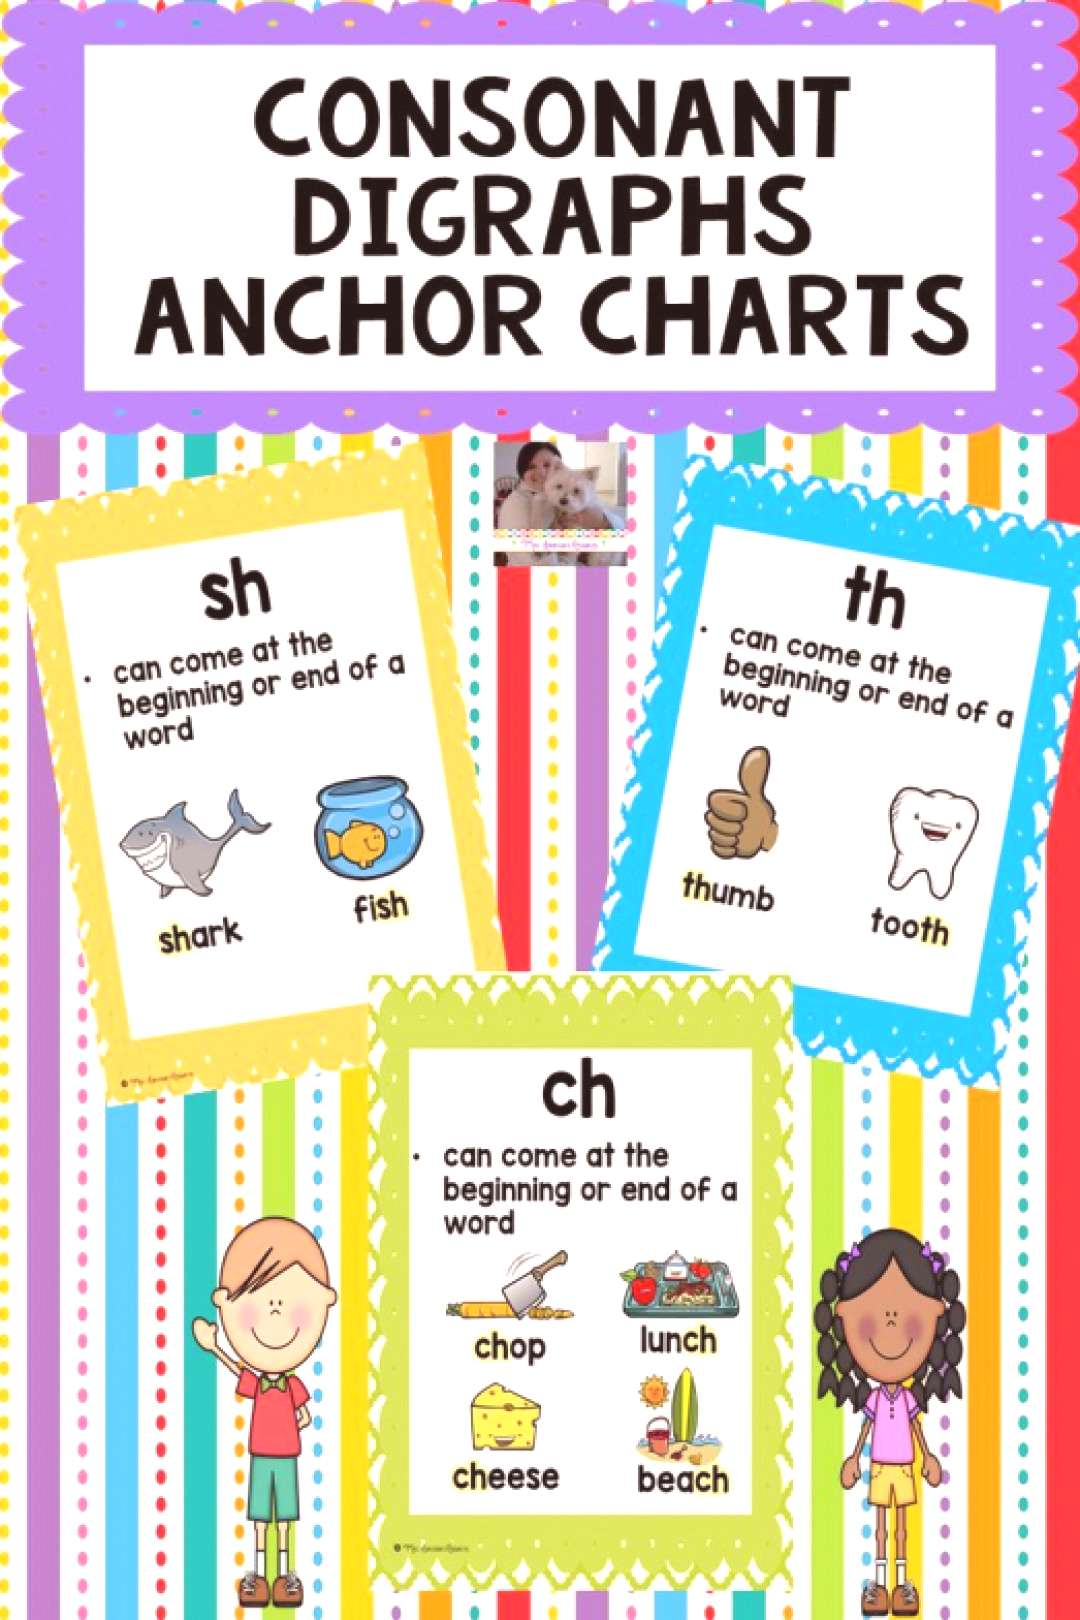 Here are consonant digraphs anchor charts that will help your students learn consonant digraphs and